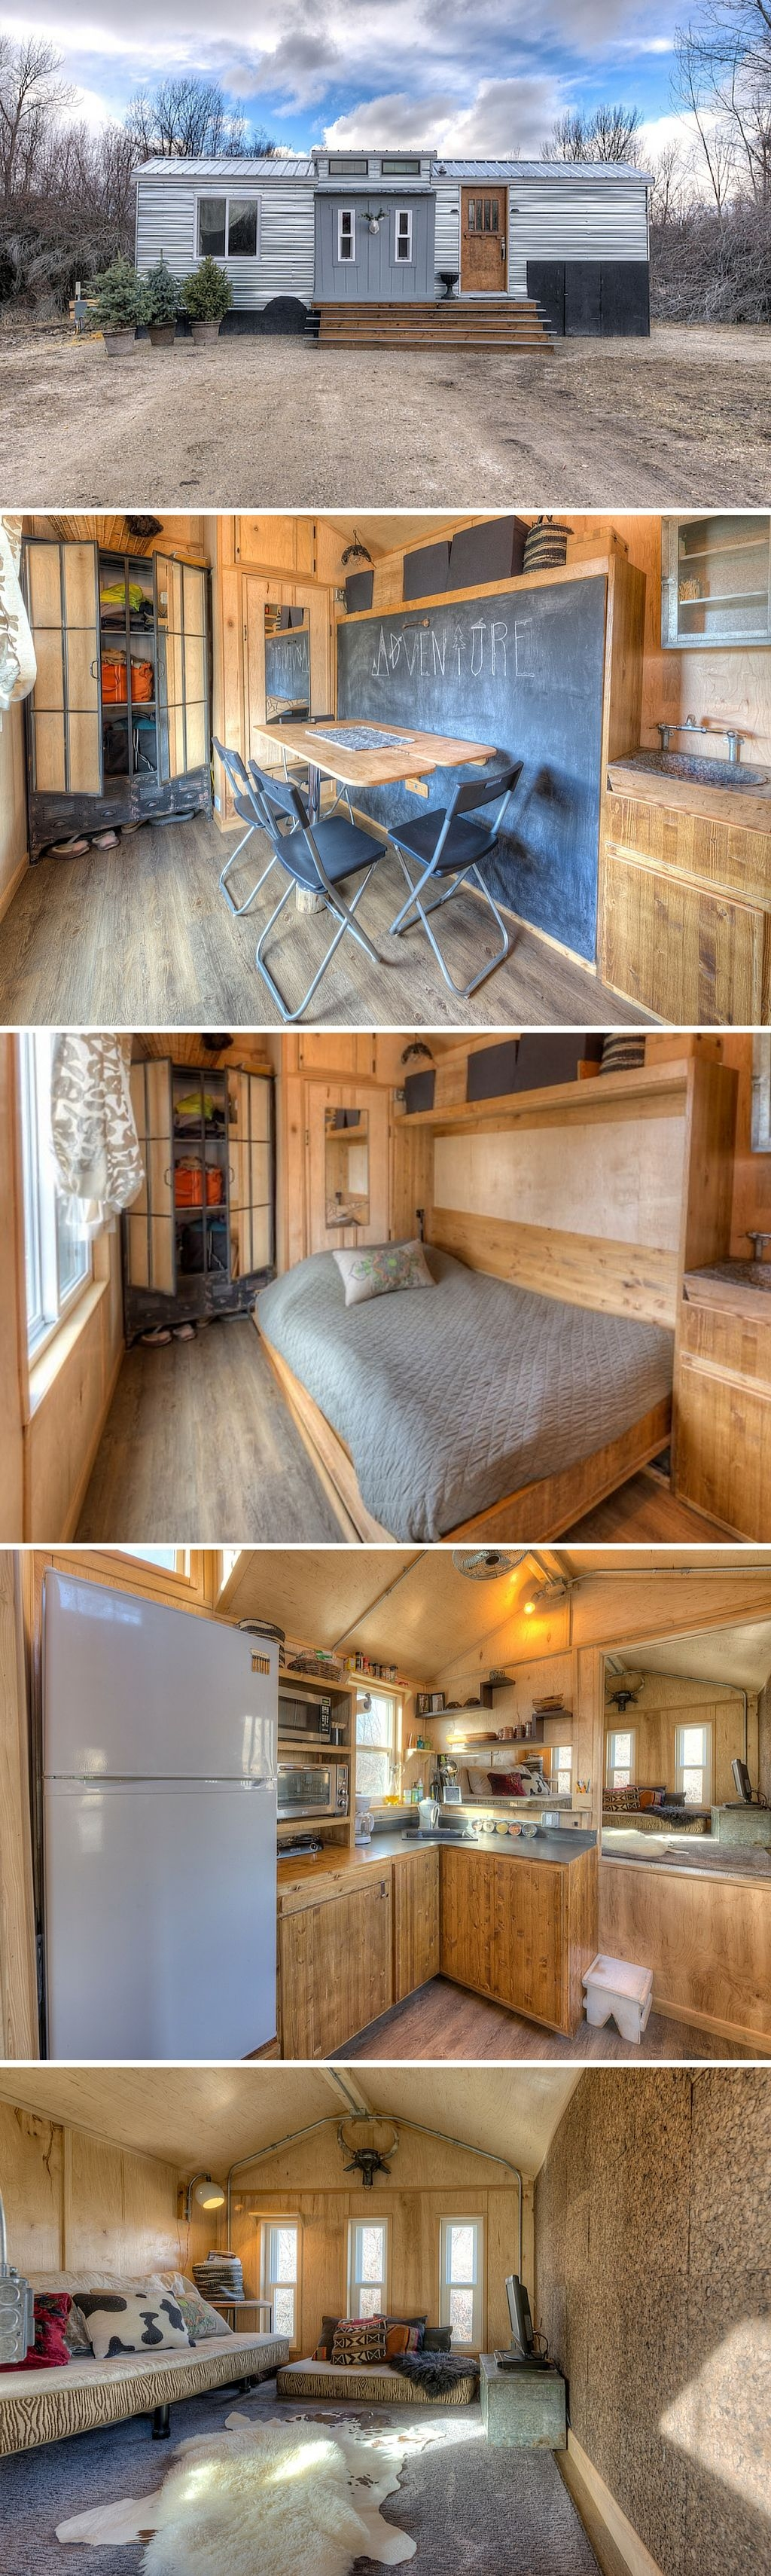 60 Small Mountain Cabin Plans with Loft Best Of the Lewis and Clark A Tiny House Retreat Available for Rent In the